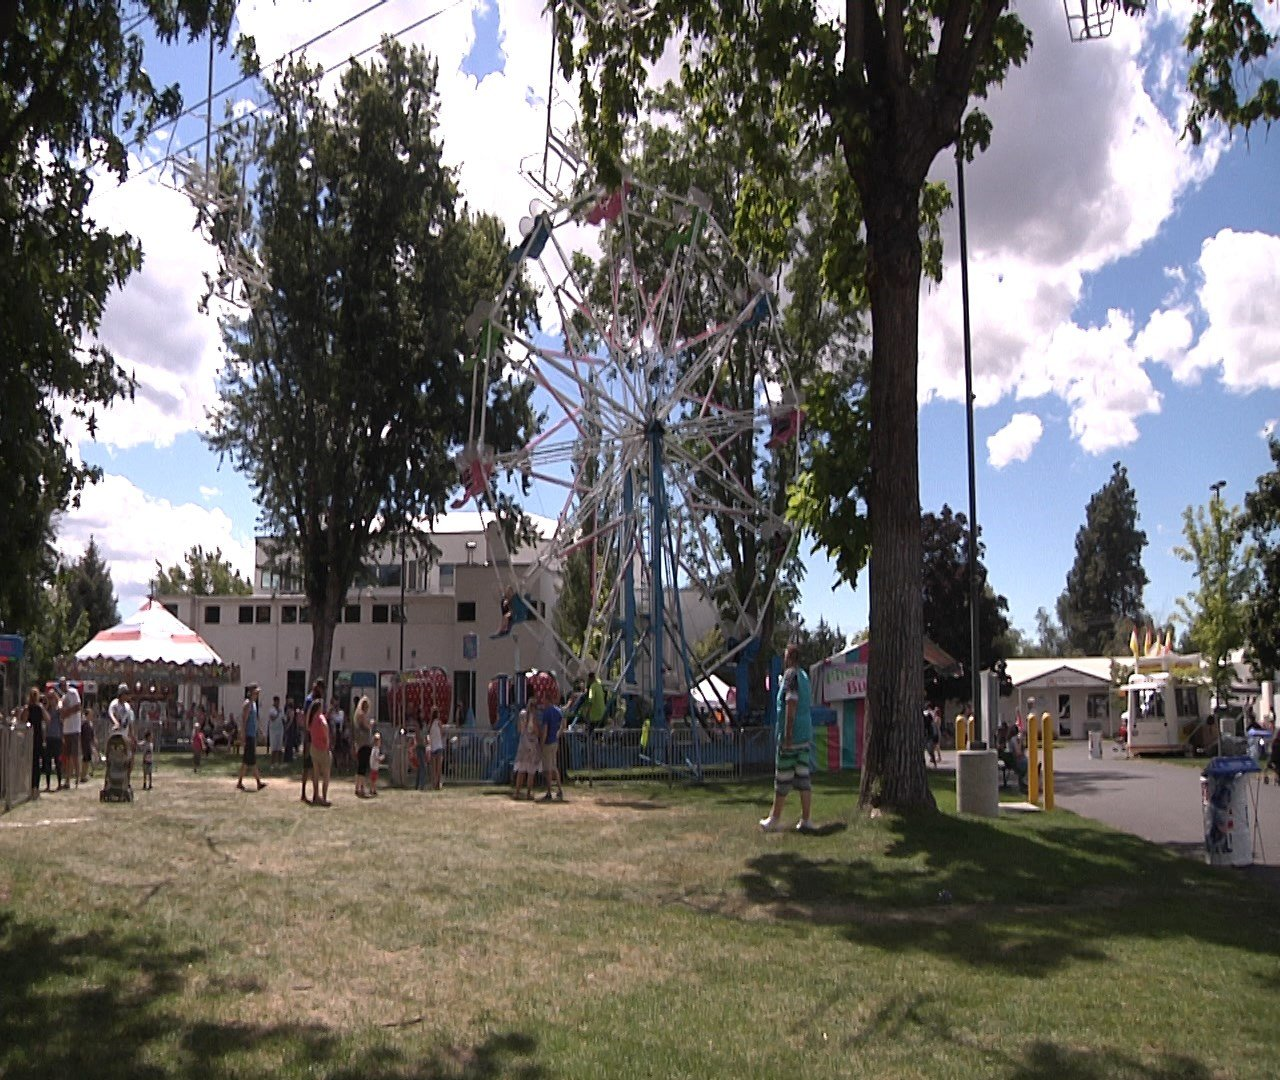 There are thousands of people enjoying the free fun at Yakima's State Fair Park located on Fair Avenue